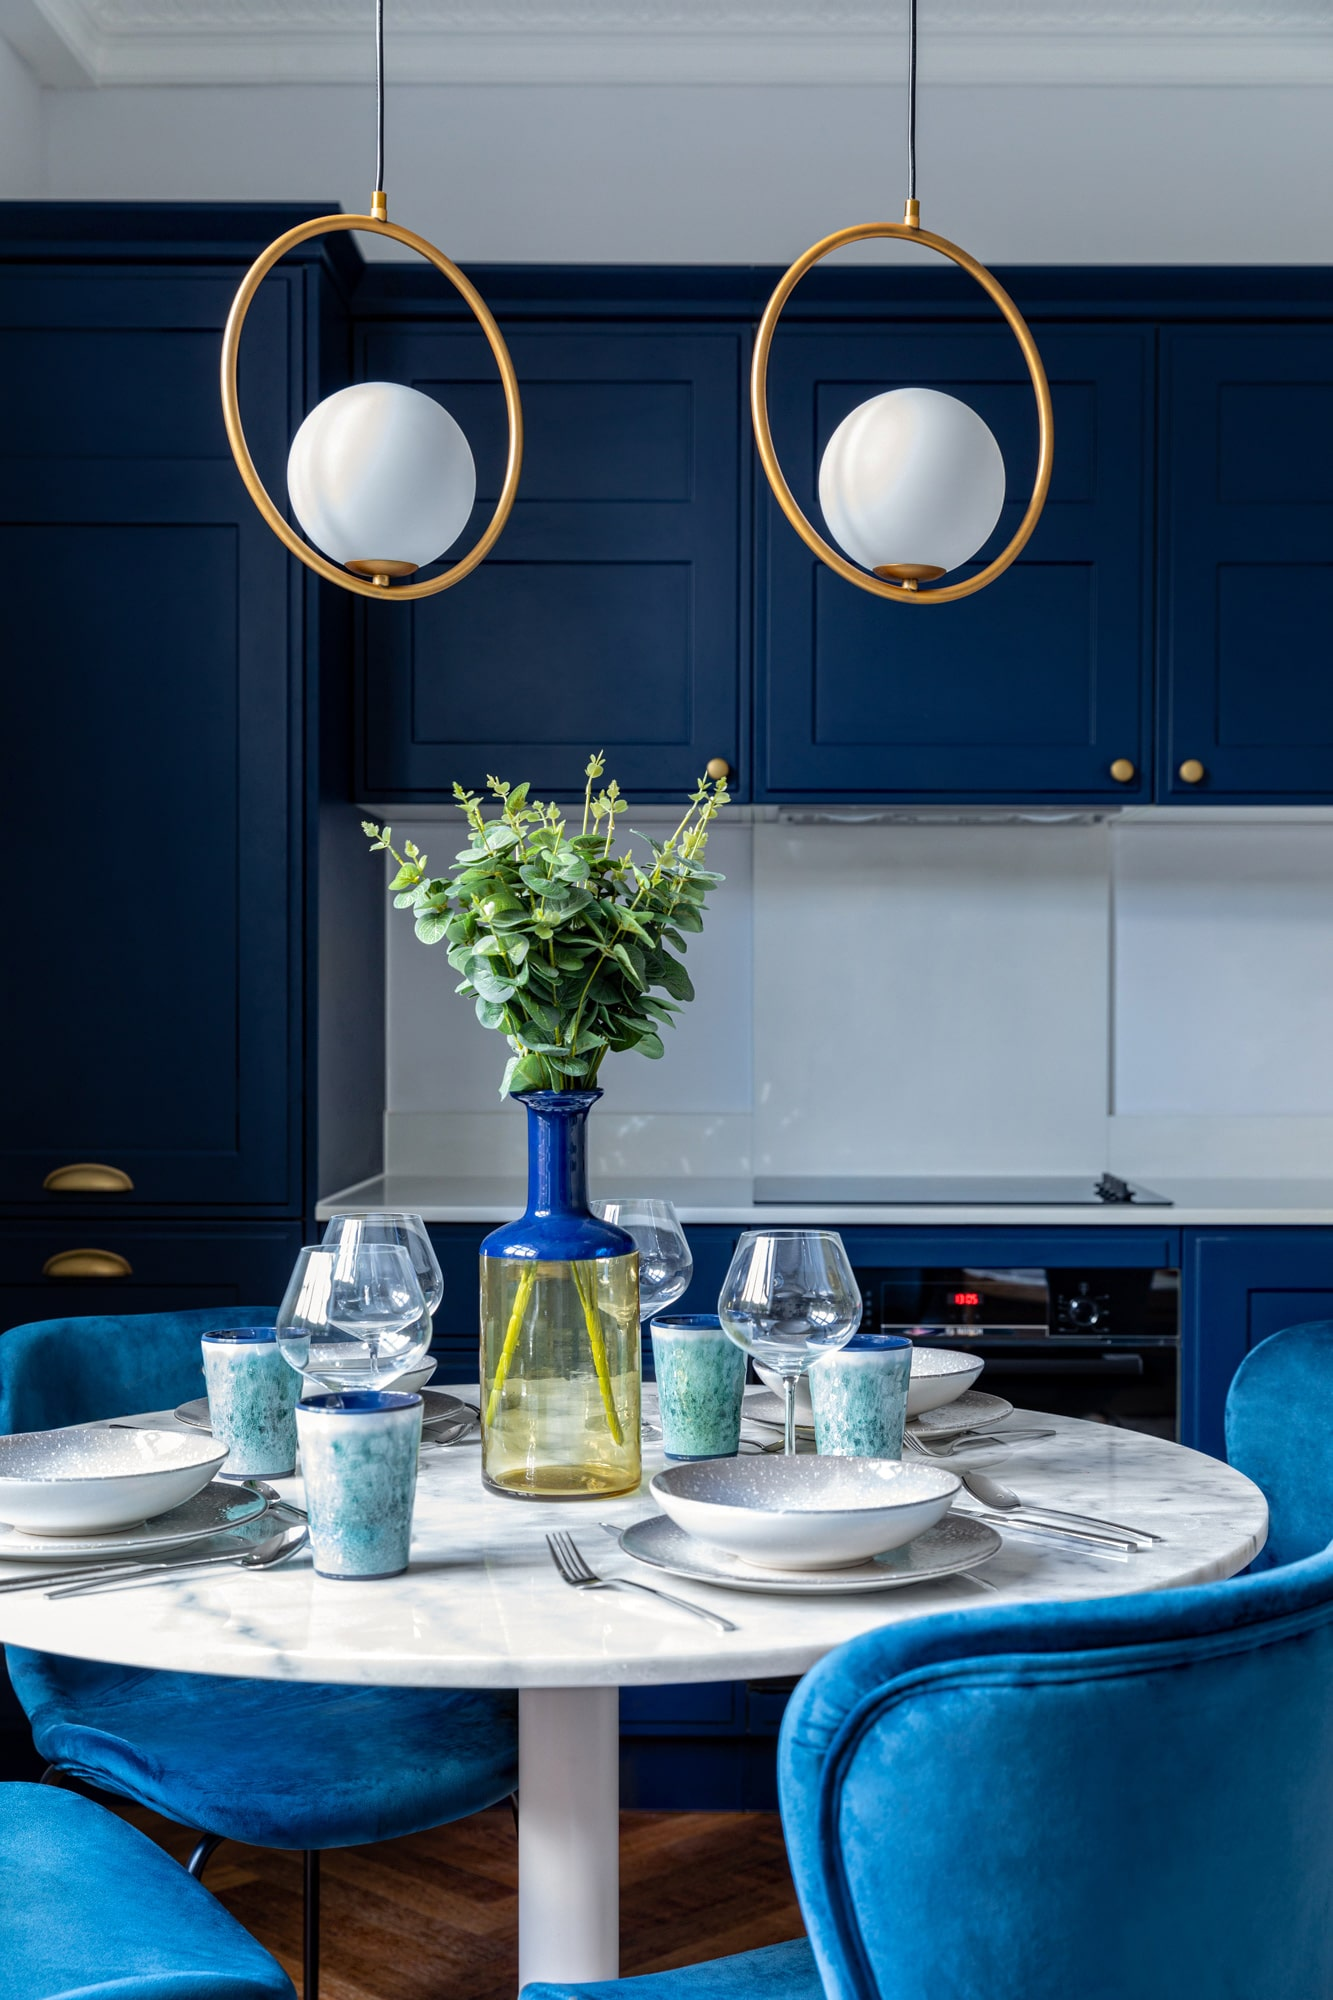 Interior close up photo of a navy blue kitchen, marble table and dark blue velvet chairs